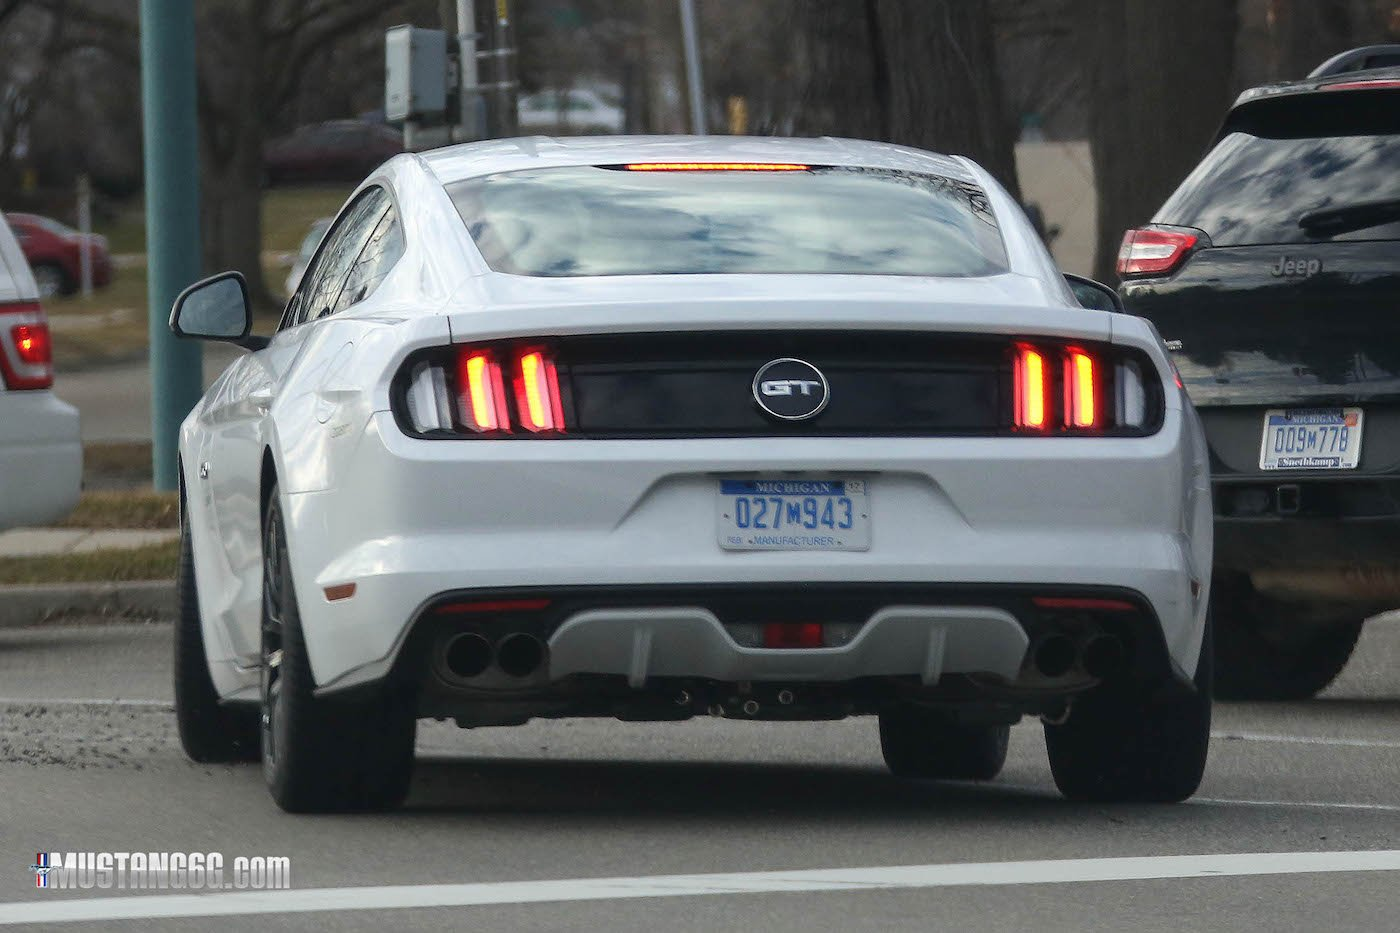 Is This the New Mustang Mach 1?